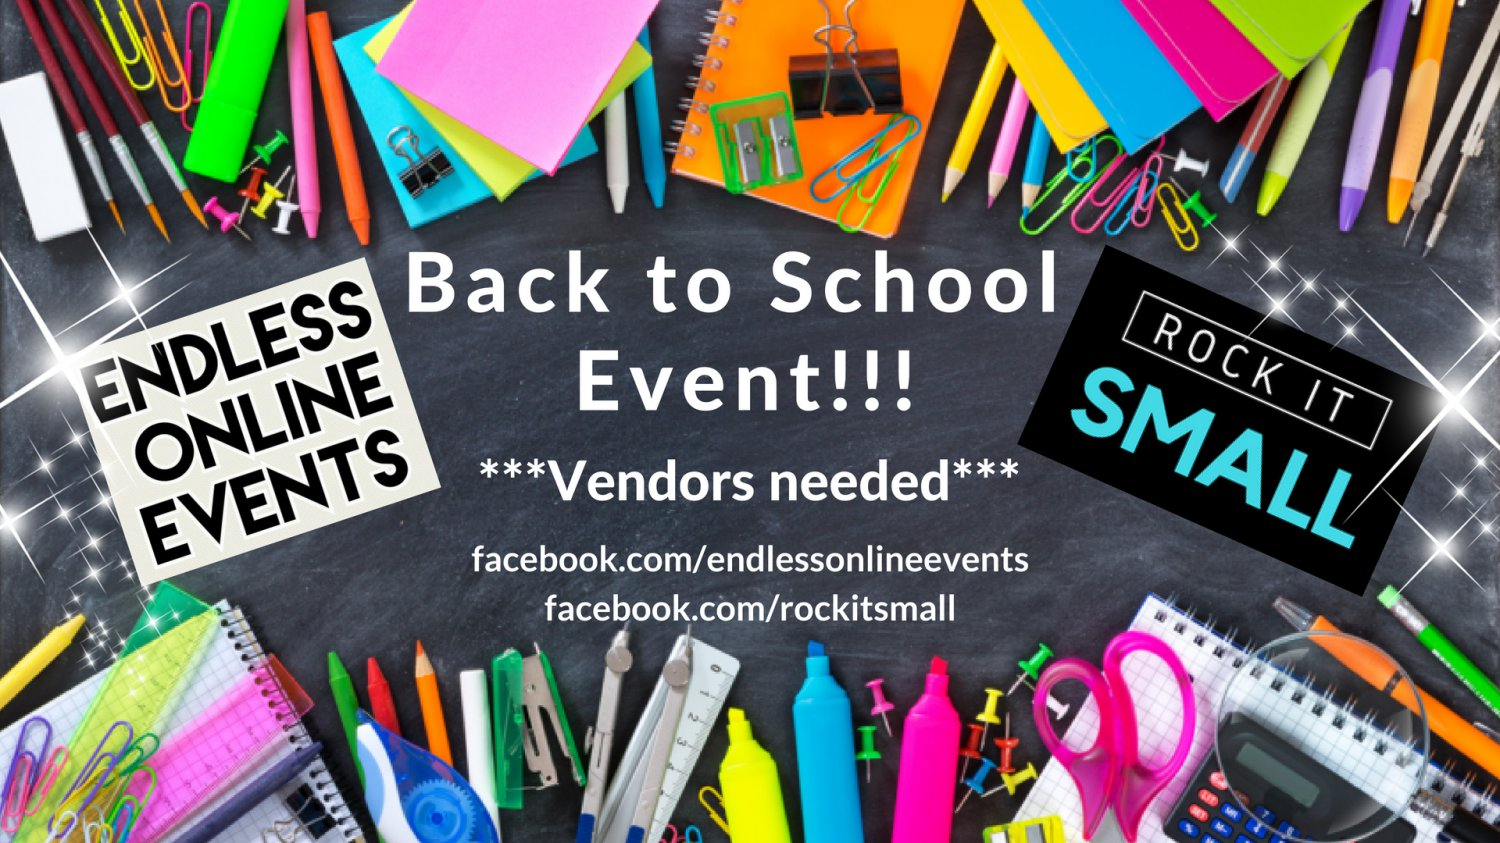 1 Vendor Spot Back To School Shopping Spree Giveaway Event